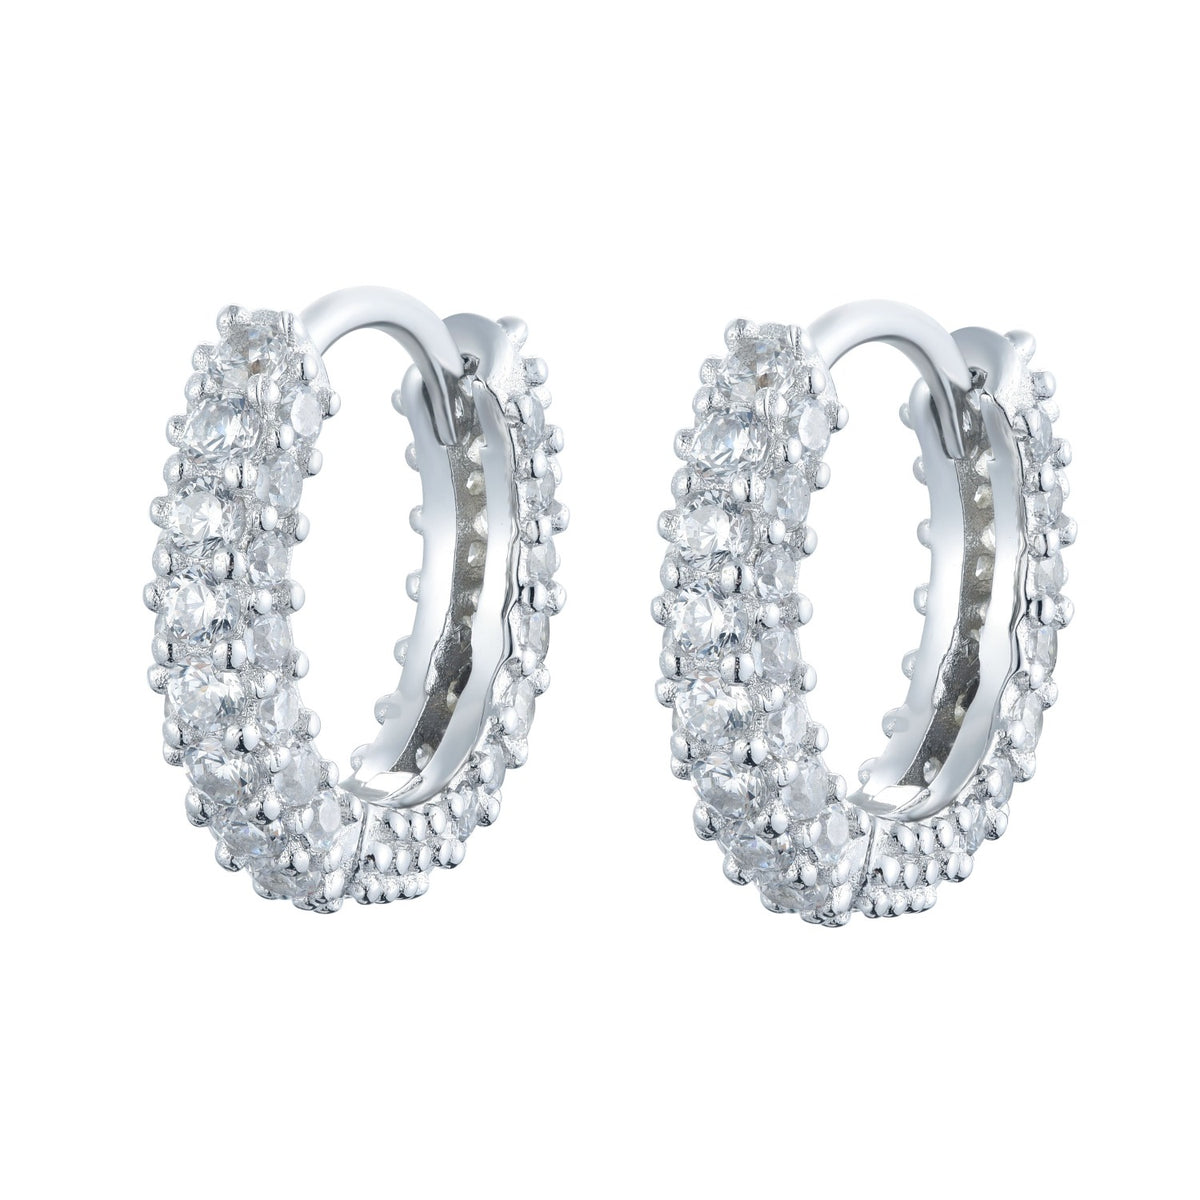 Fortuna | Rome Earrings | 925 Silver | White CZ | White Rhodium Plated